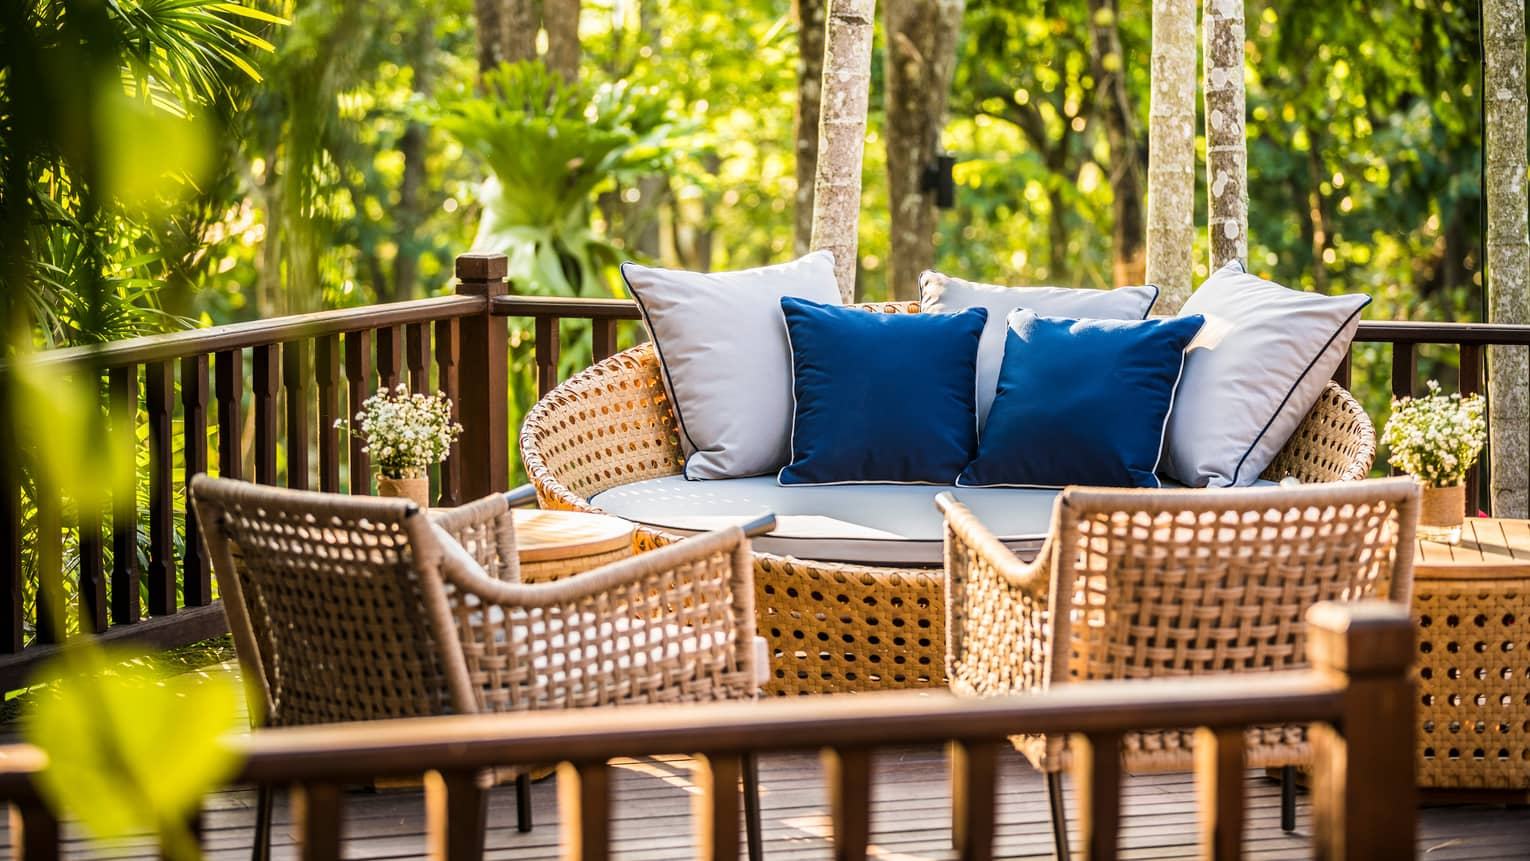 Wicker loveseat with white and blue cushions across from chairs on patio